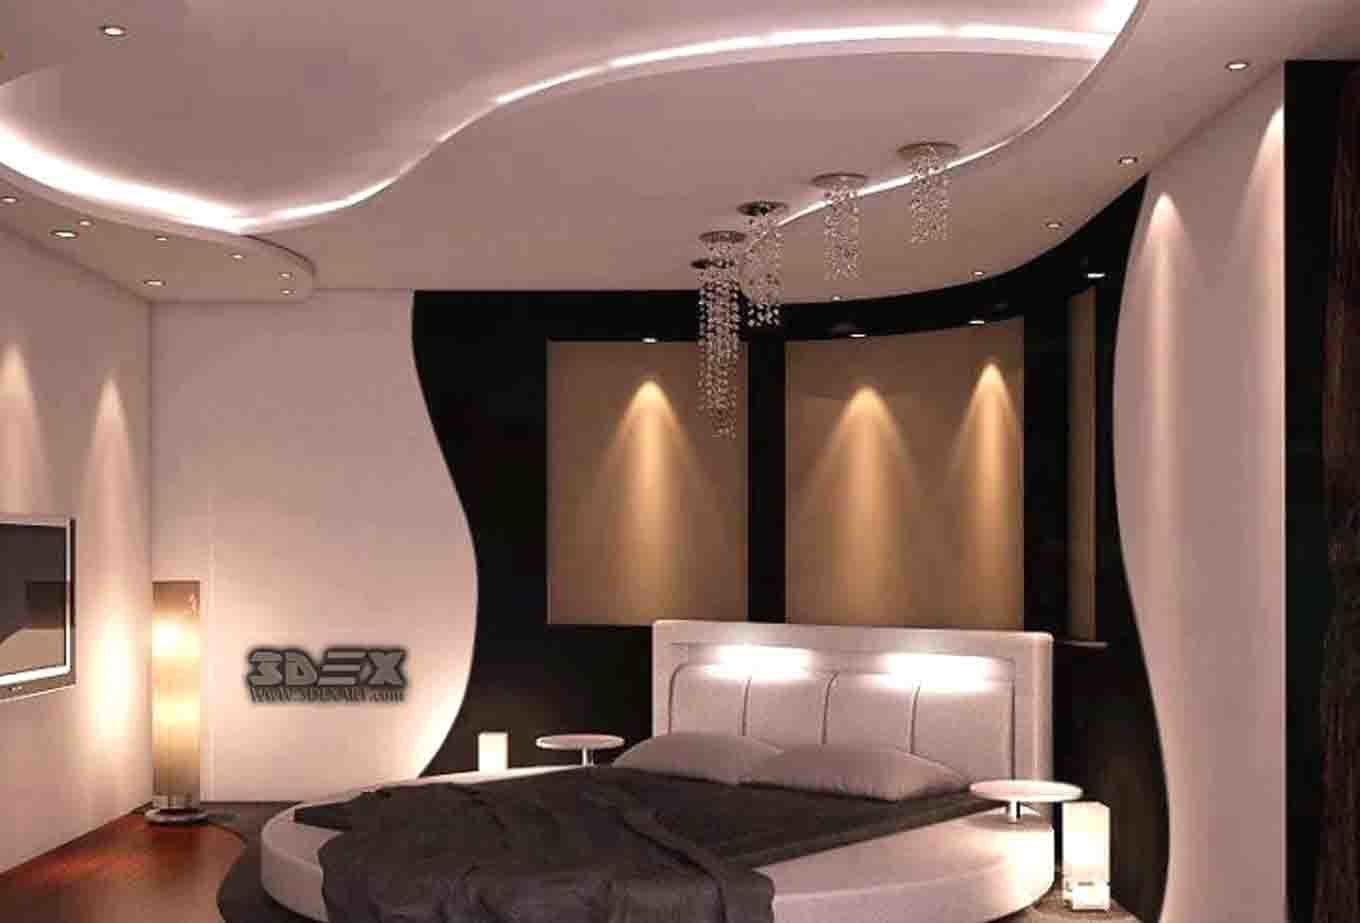 Best Top False Ceiling Designs Pop Design For Bedroom 2019 With Pictures